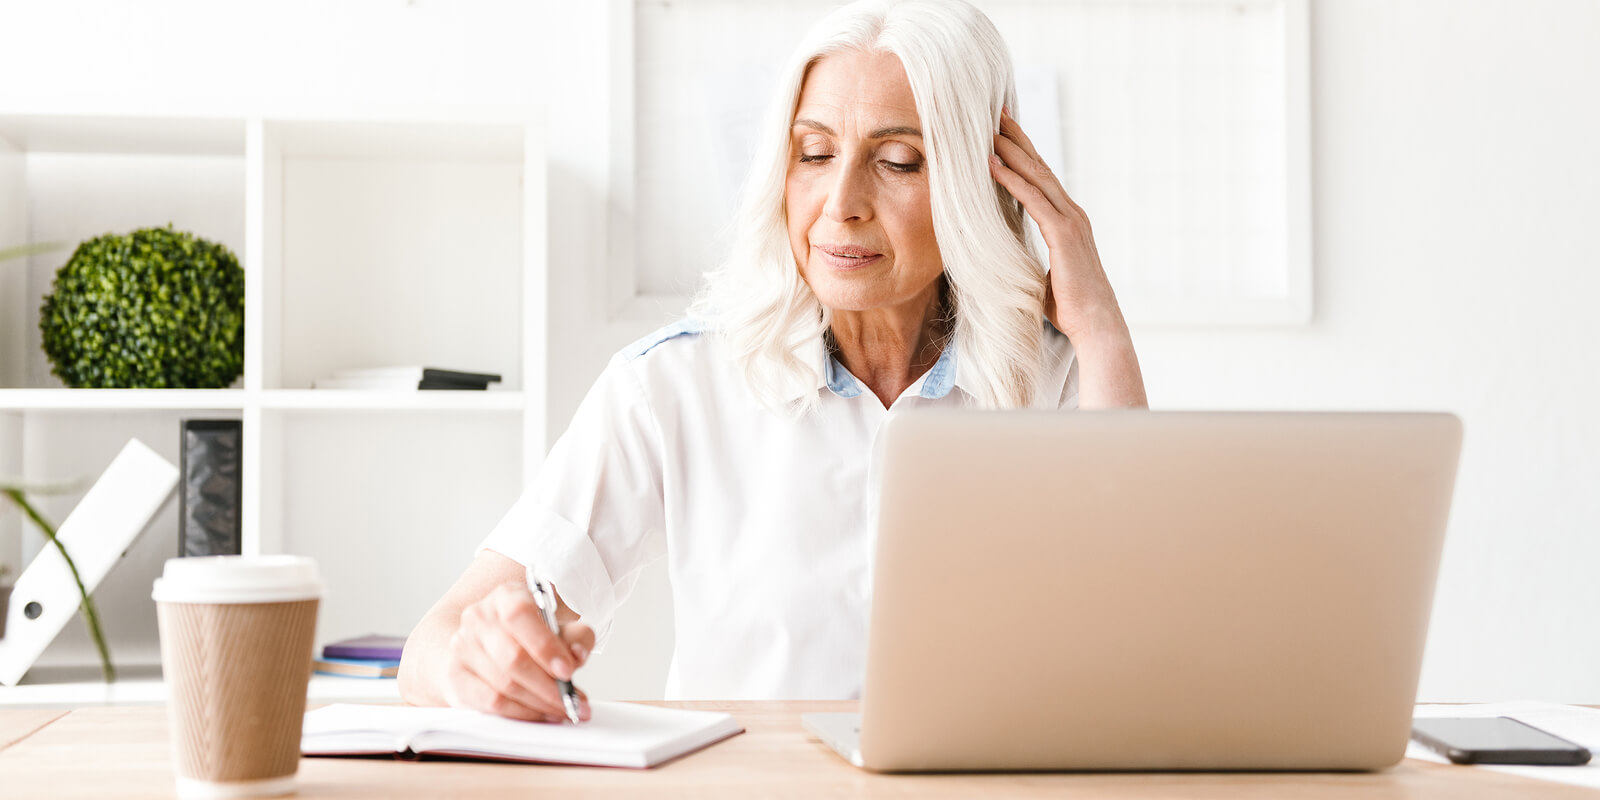 Best dating site for retired professionals for hire